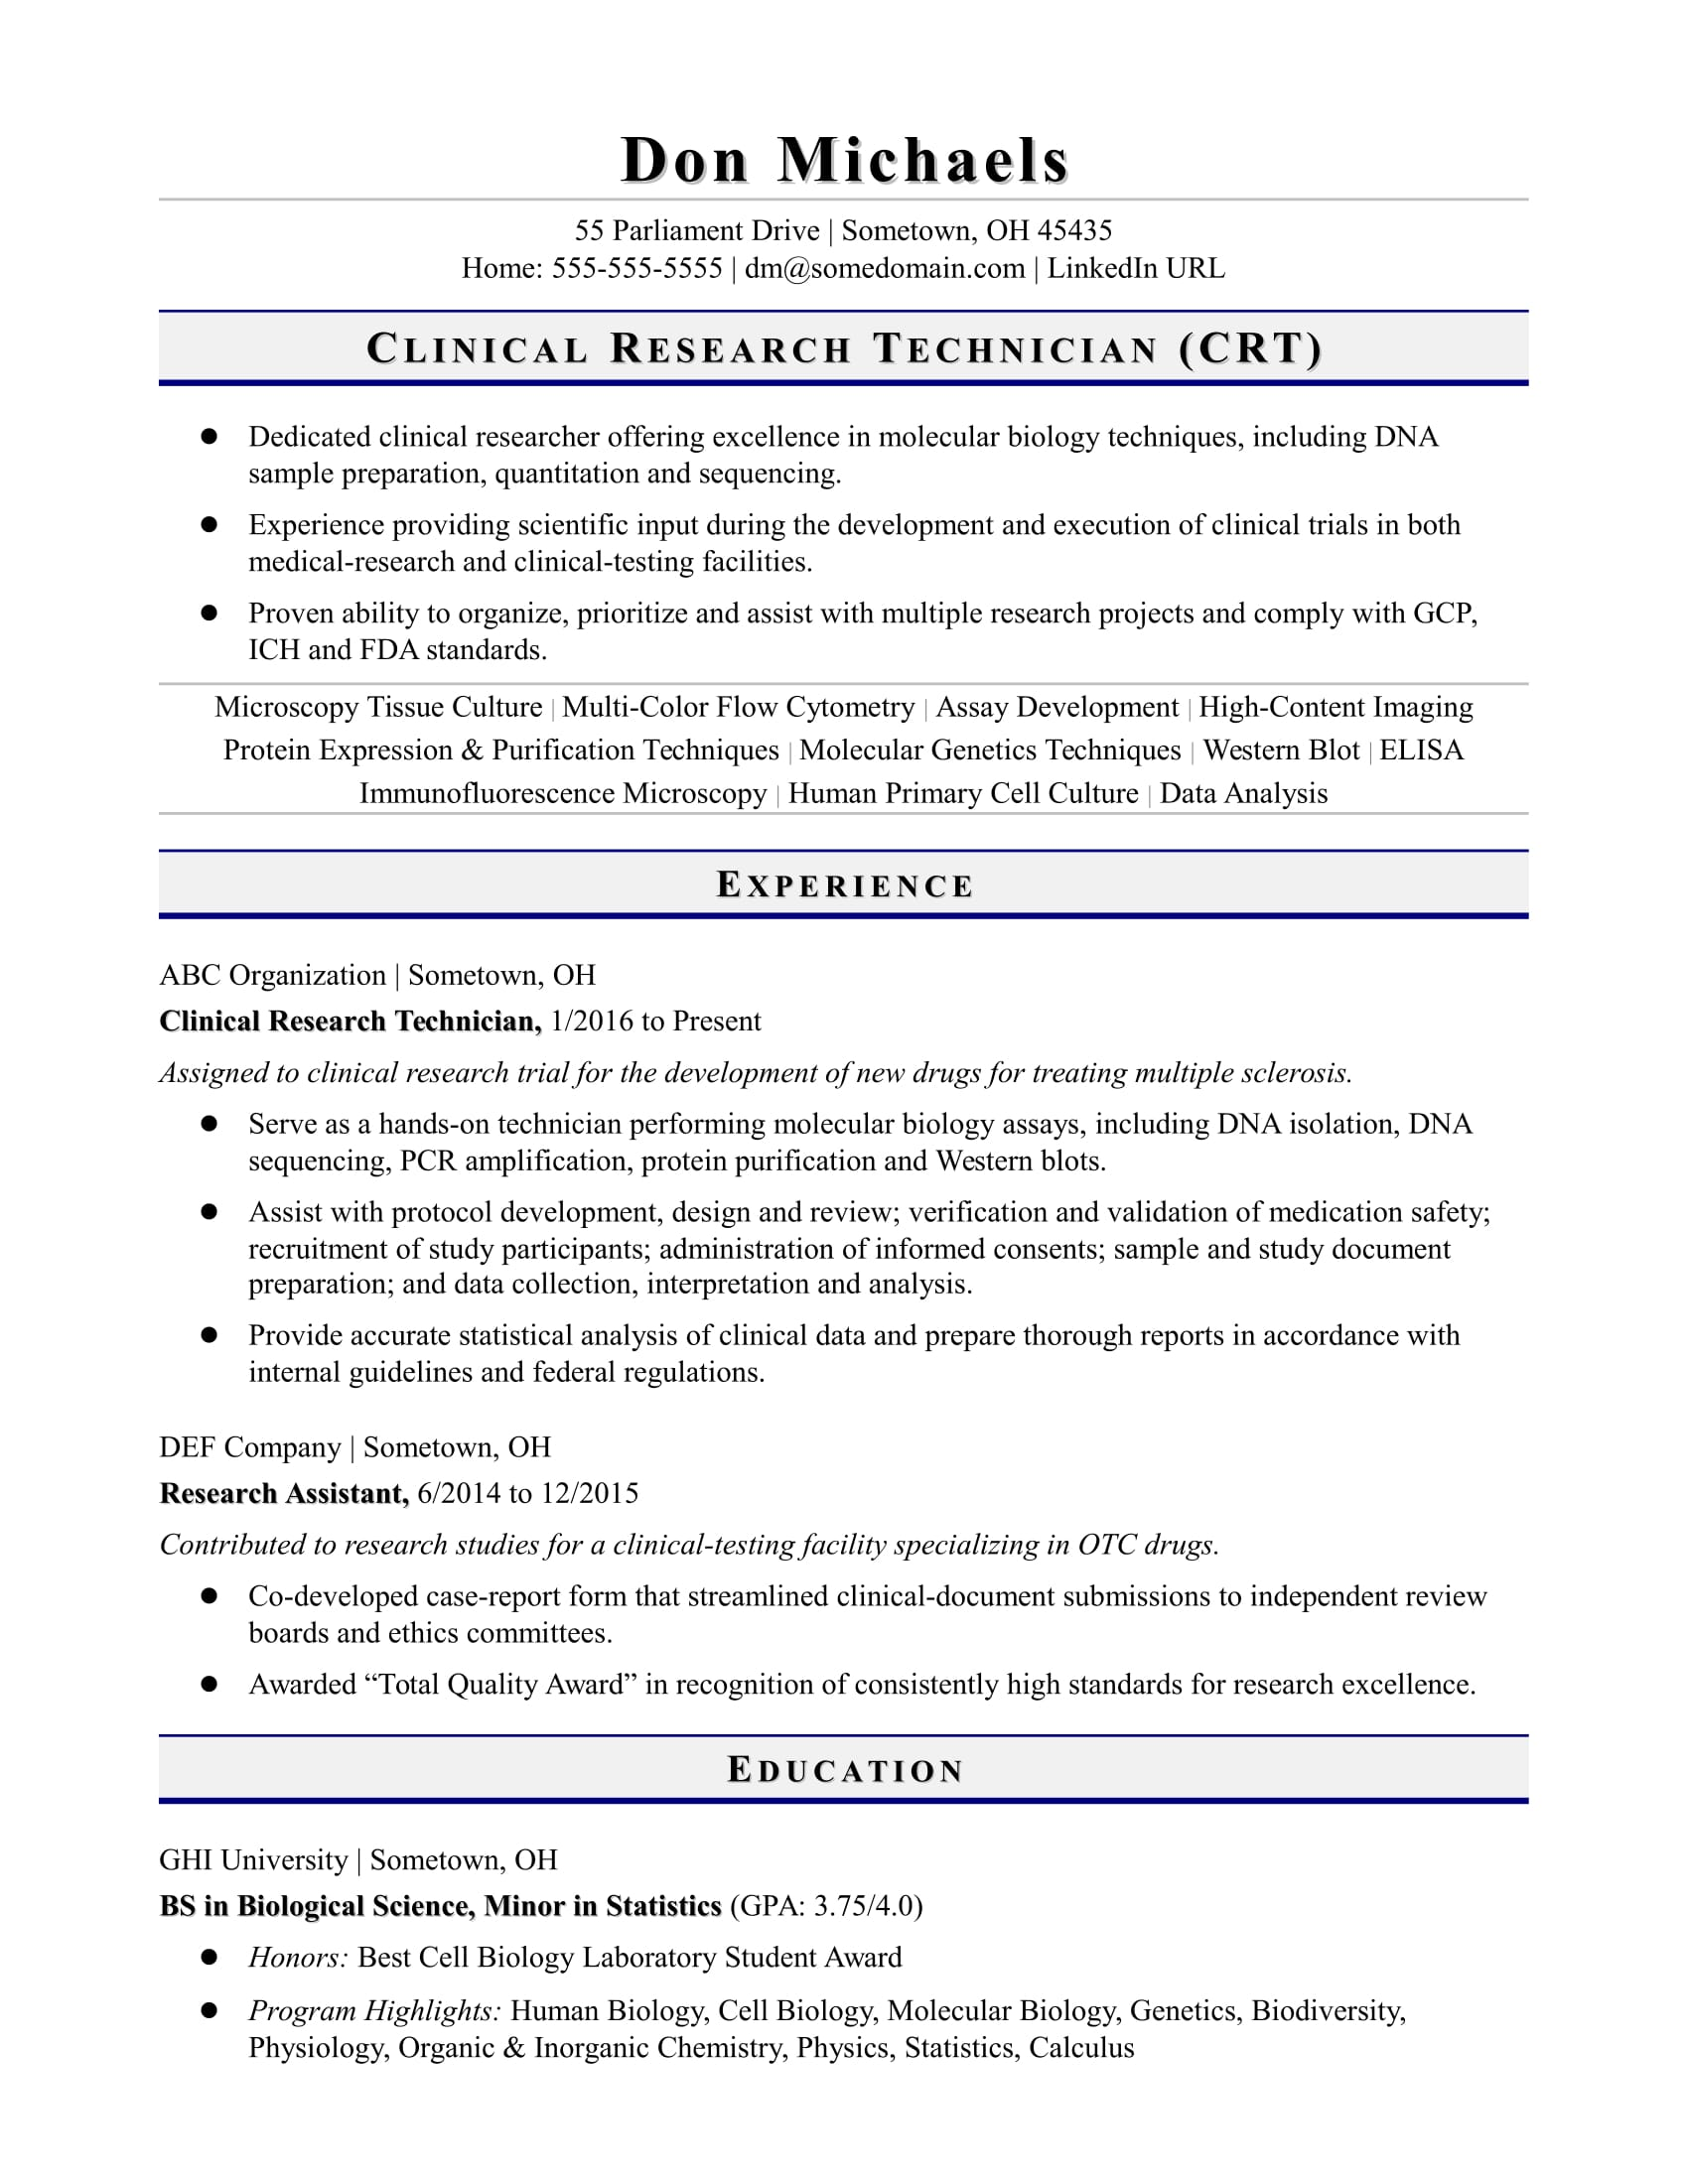 Sample Resume For An Entry Level Research Technician  Biology Resume